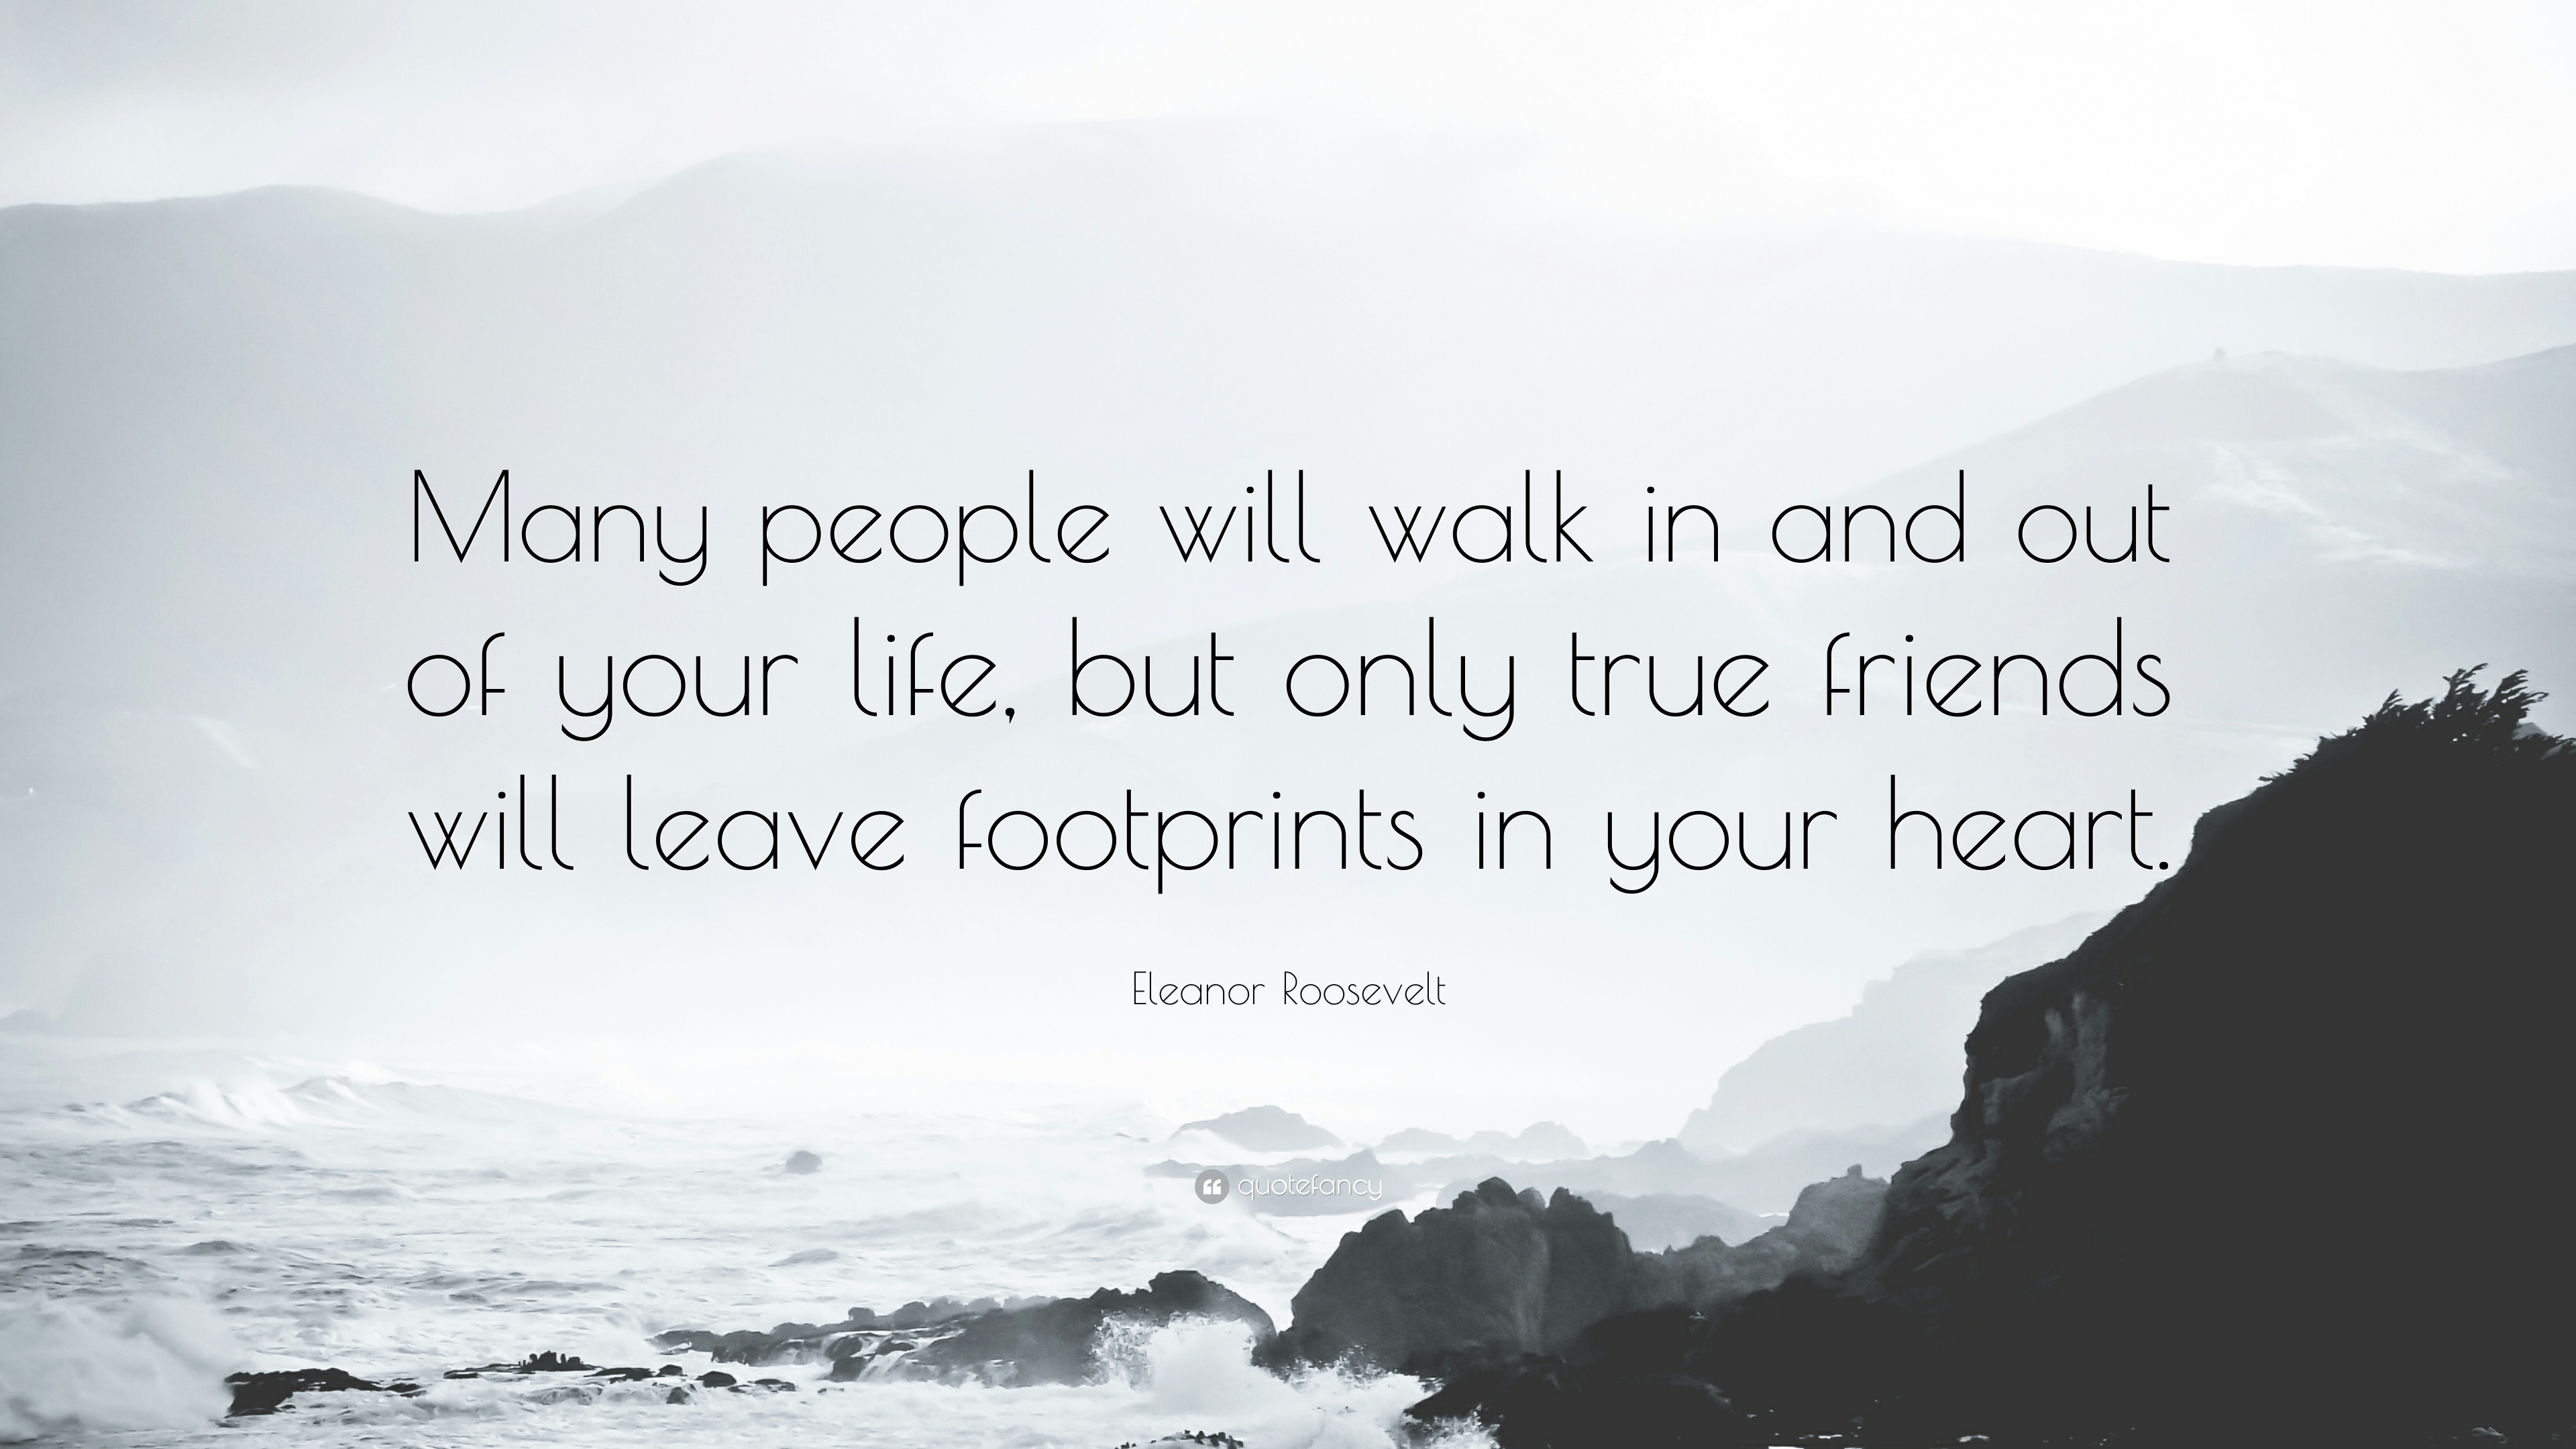 Friendship Is About Quotes Friendship Quotes 21 Wallpapers  Quotefancy